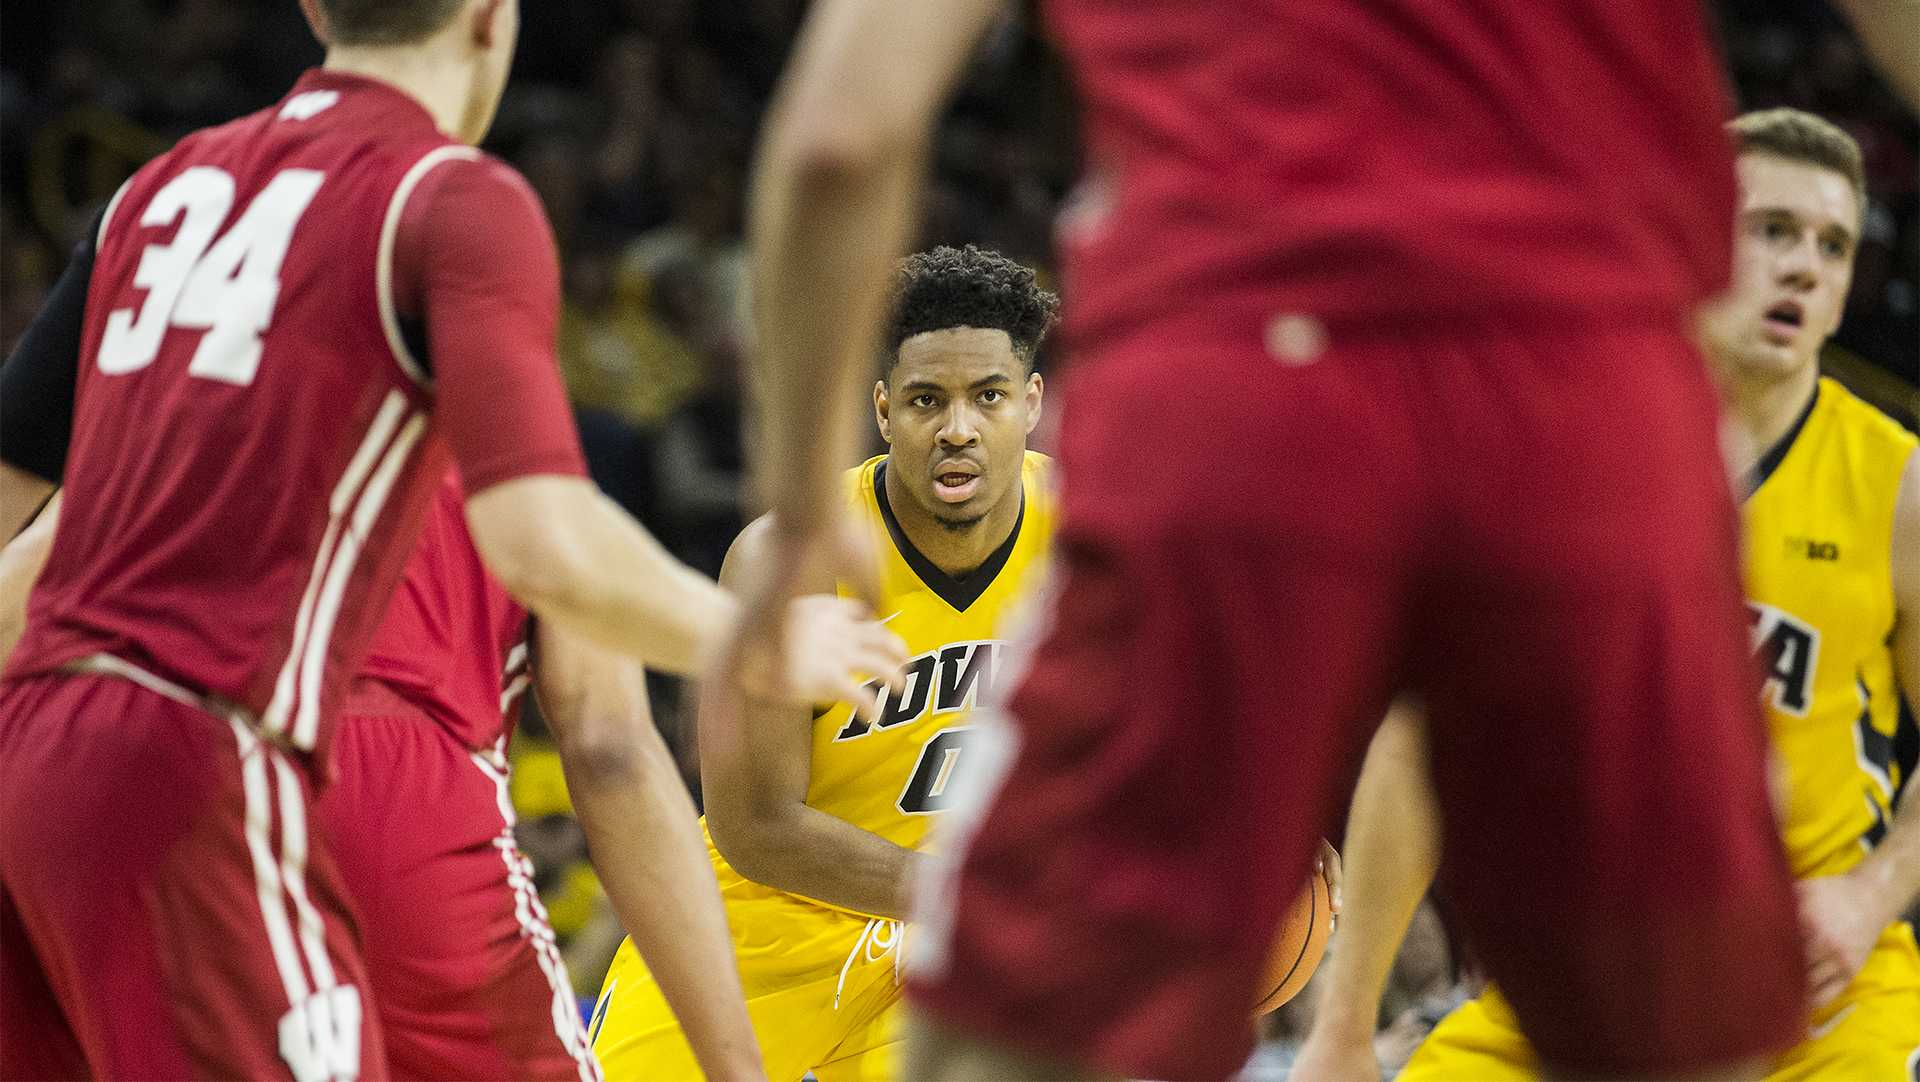 Iowa forward Ahmad Wagner (0) looks for an open pass during the NCAA men's basketball game between Iowa and Wisconsin at Carver-Hawkeye Arena on Tuesday, Jan. 23, 2018. The Hawkeyes are going into the game with a conference record of 1-7. Iowa went on to defeat Wisconsin 85-67. (Ben Allan Smith/The Daily Iowan)